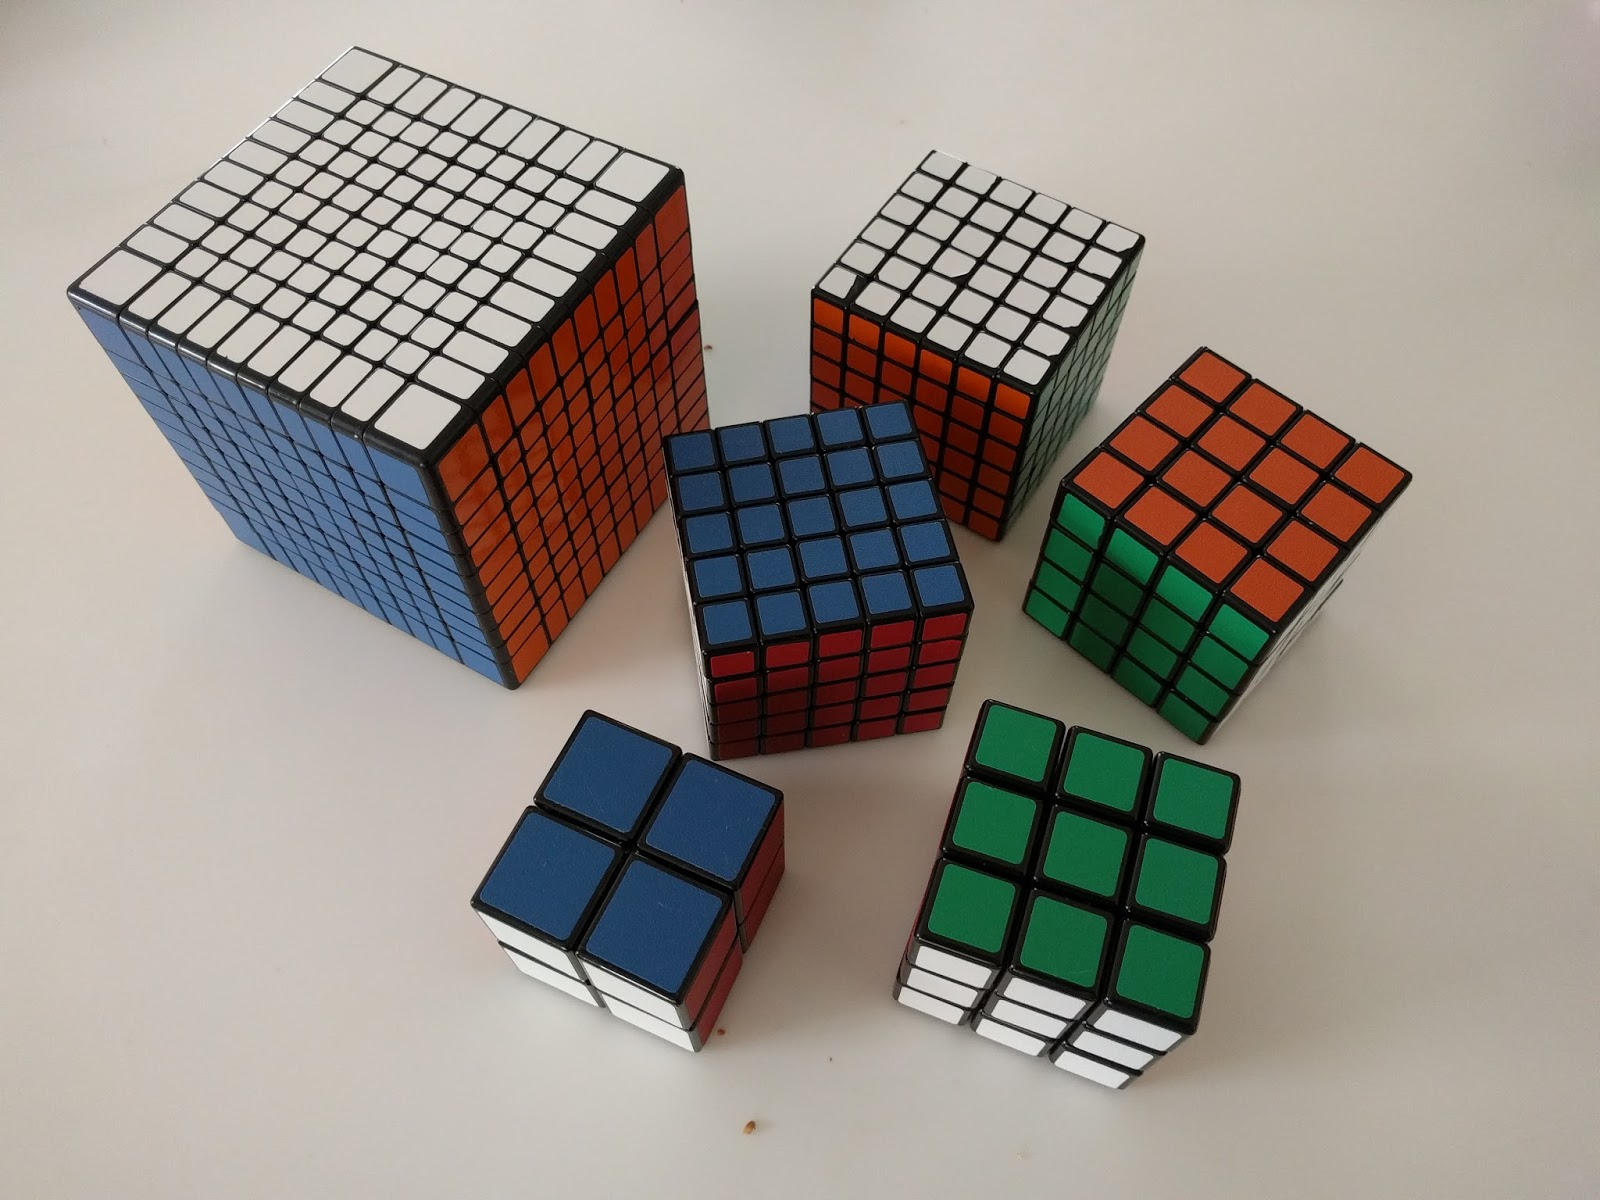 small resolution of now before you go jumping head first you really need to practice with some smaller cubes first you look in that photo above and you ve got everything from